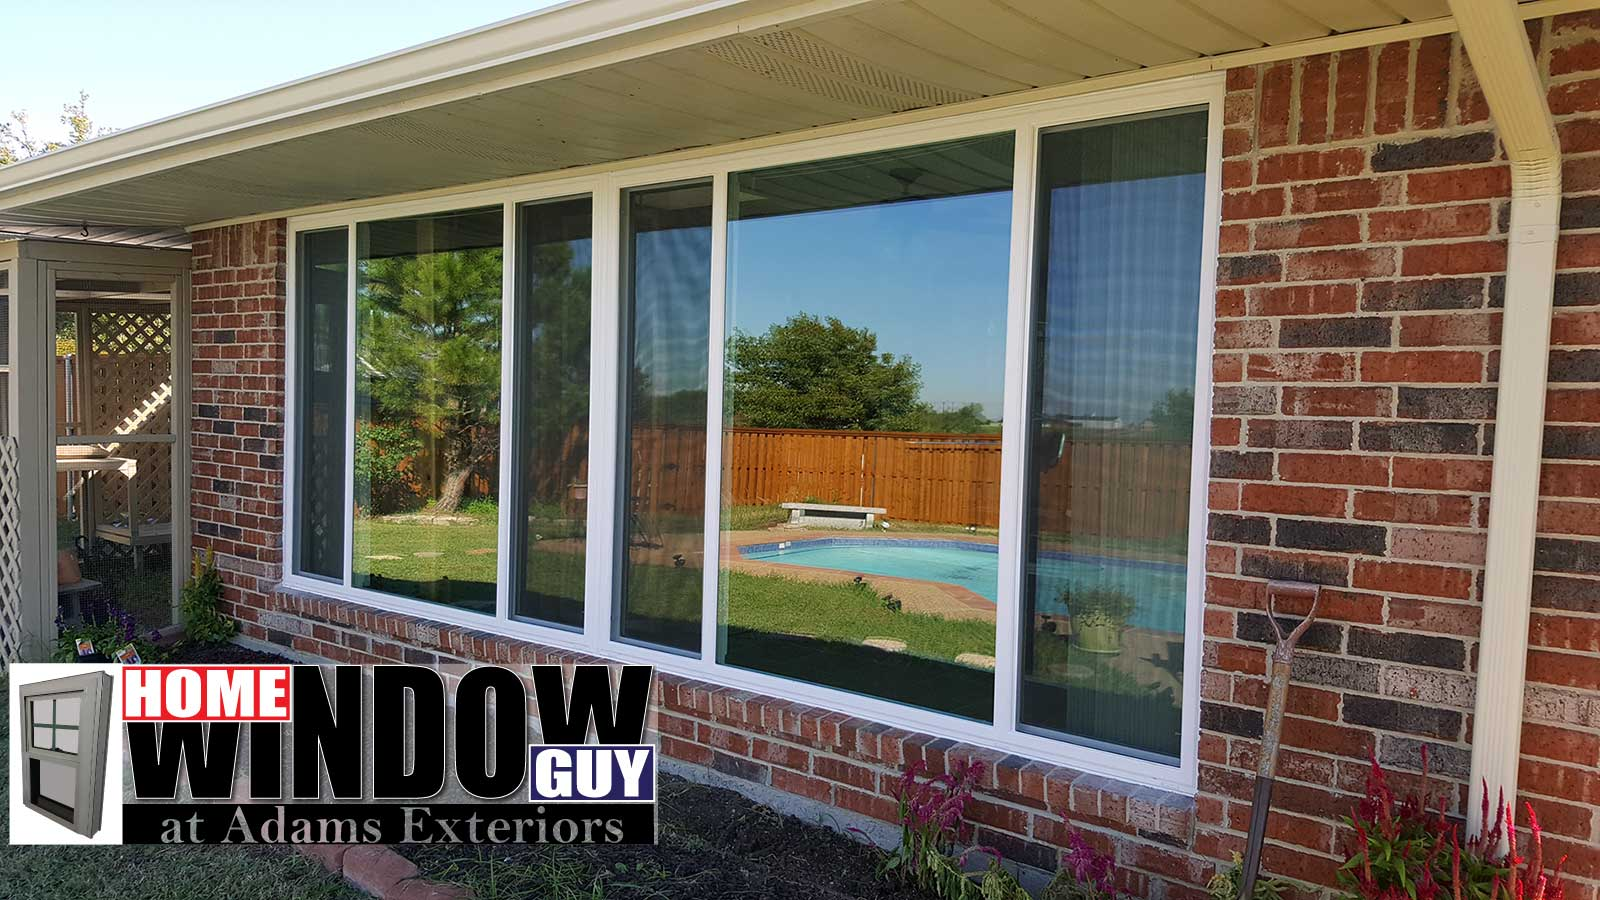 Home window guy replacement windows dallas ft worth tx for House window replacement